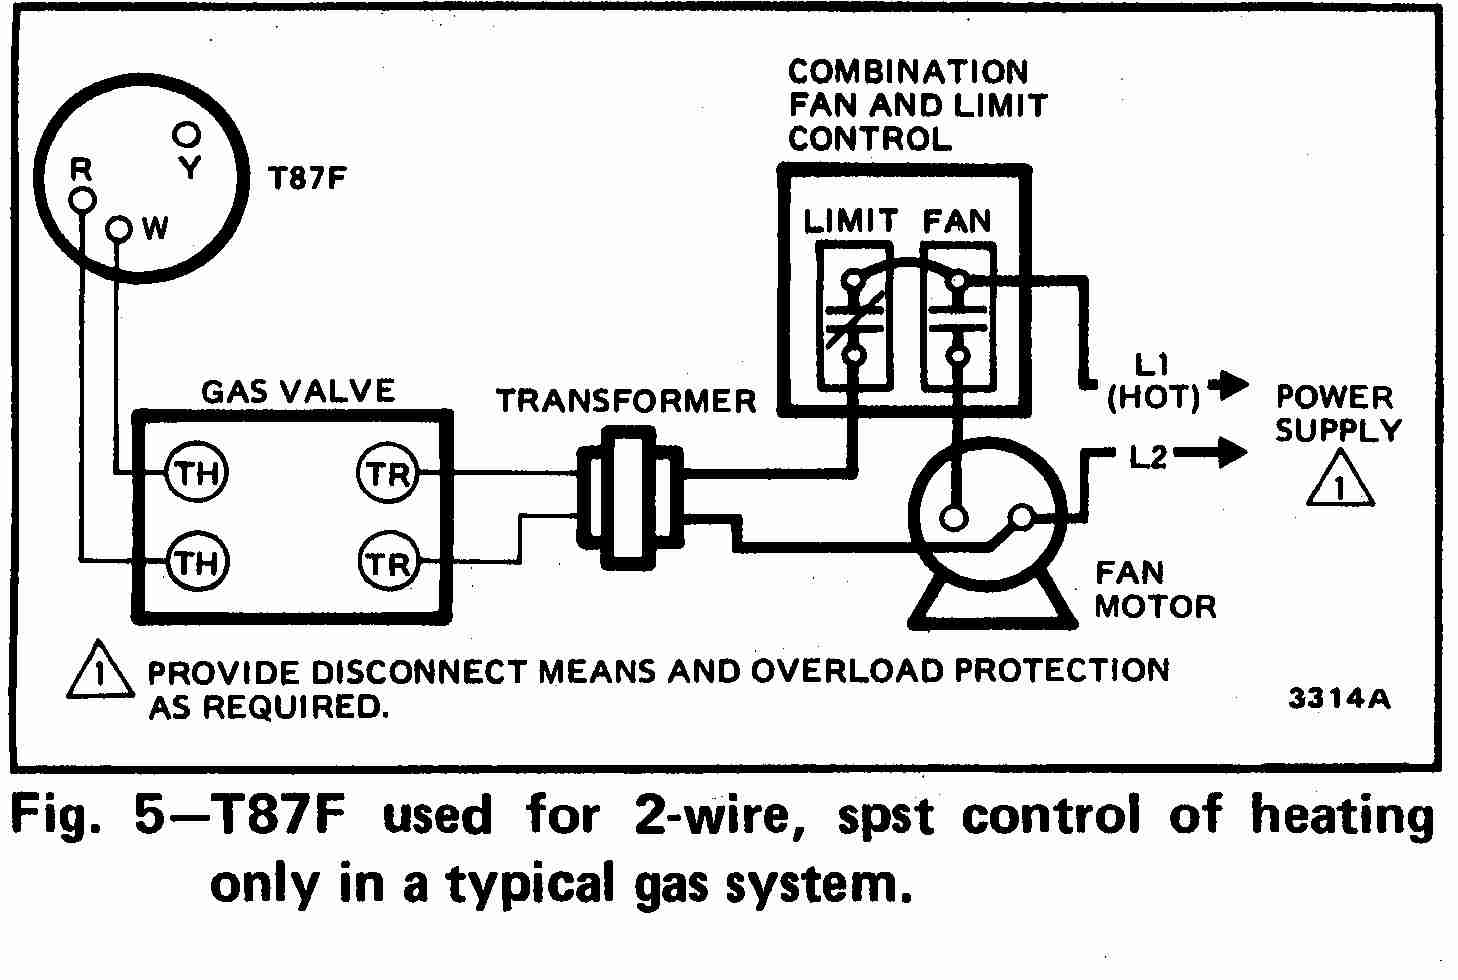 Wiring Diagram For Rheem Hot Water Heater Collection